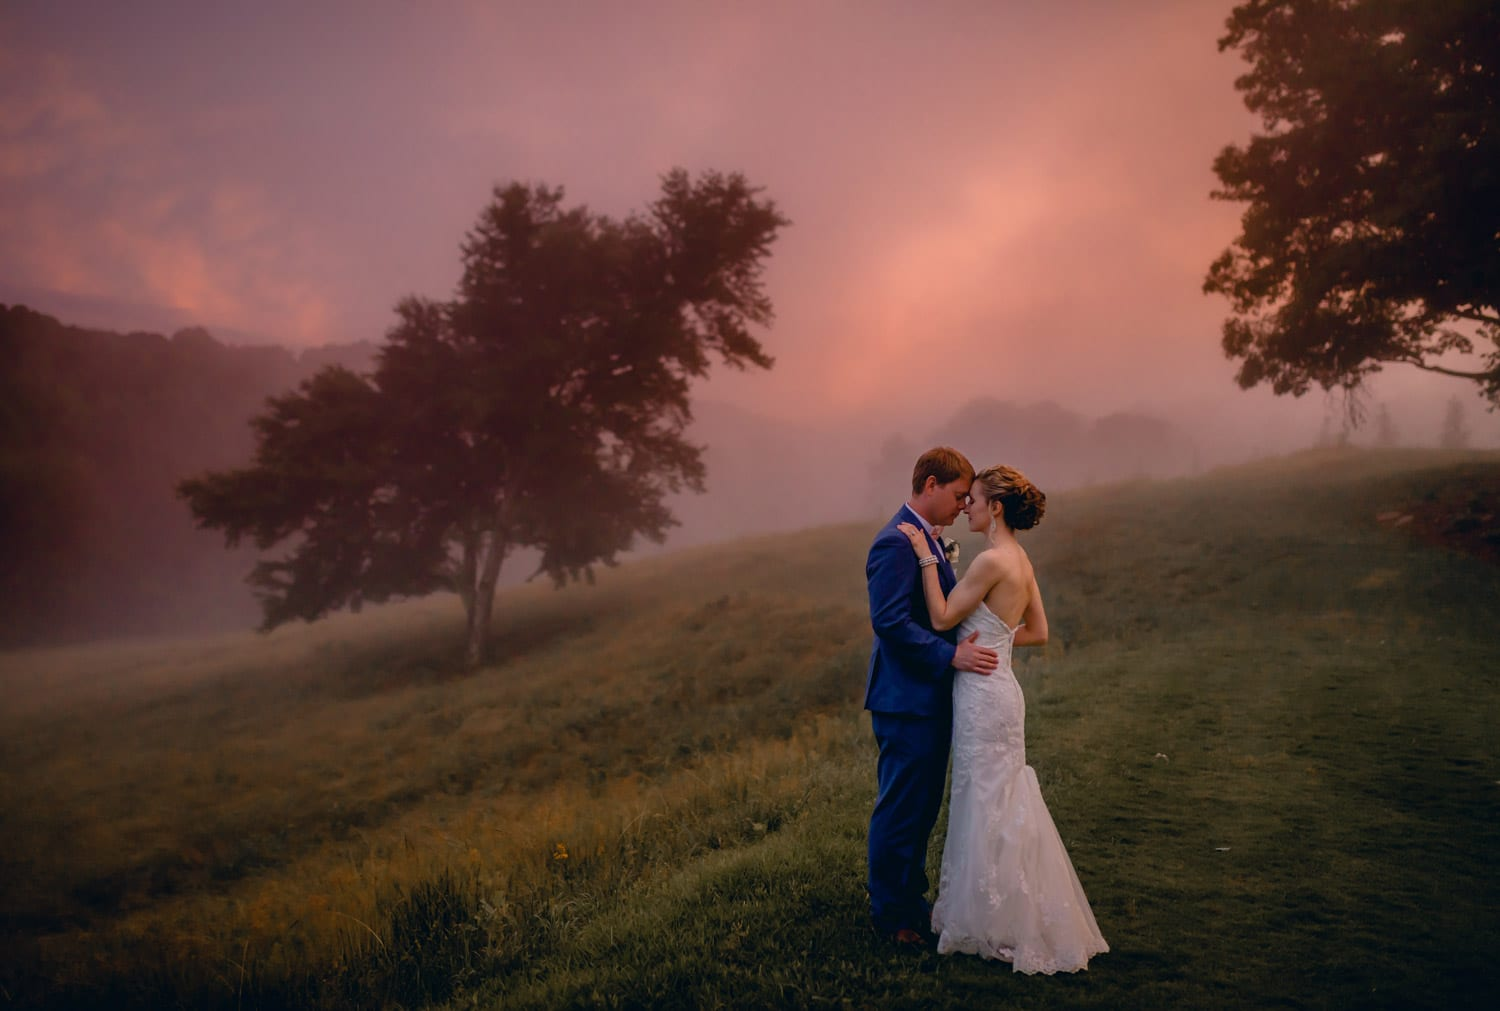 Bride and groom hold each other in front of pasture